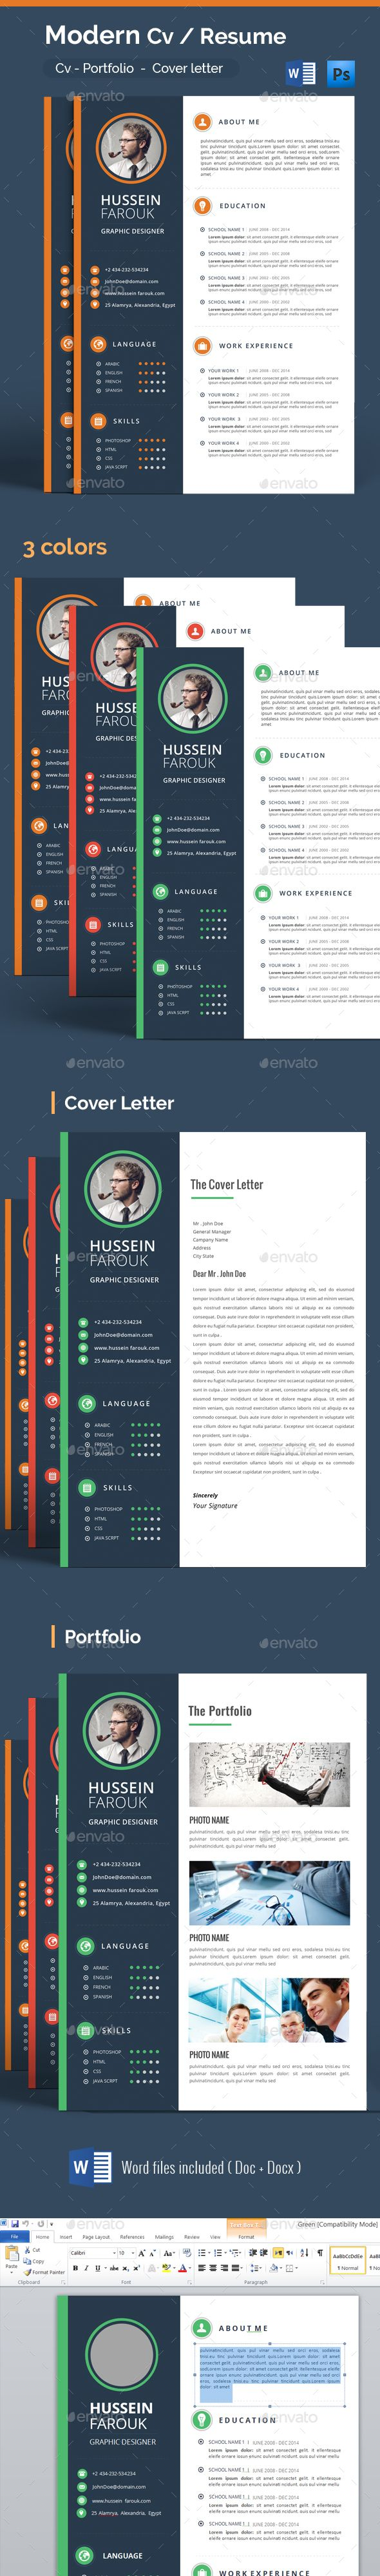 Modern Cv / Resume Template PSD #design Download: http://graphicriver.net/item/modern-cv-resume/14036497?ref=ksioks